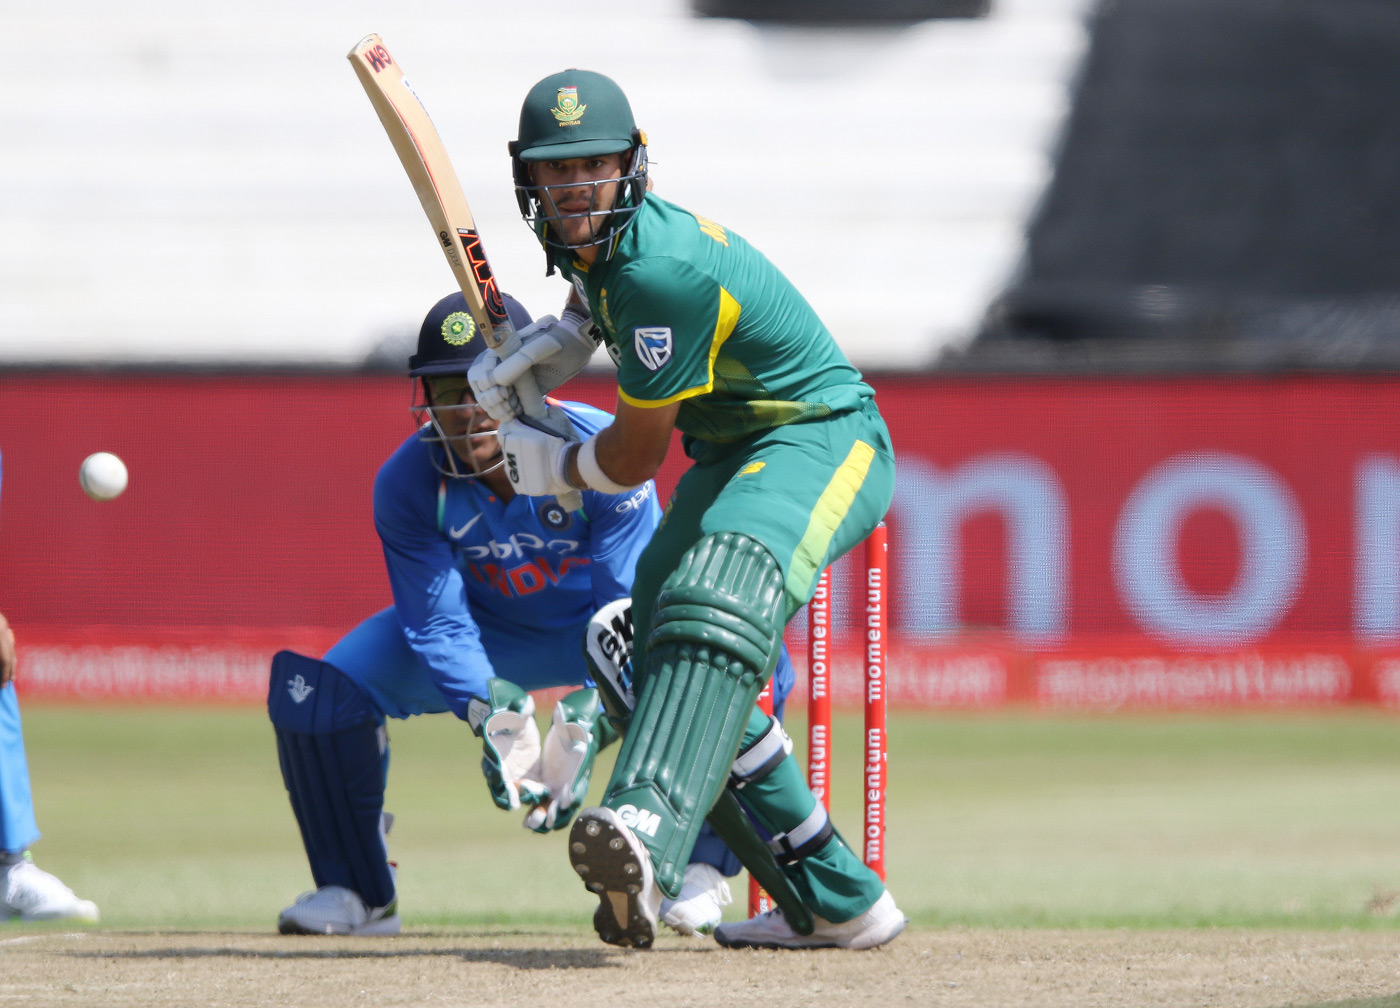 Markram is likely to be a key figure for South Africa in next year's World Cup in England